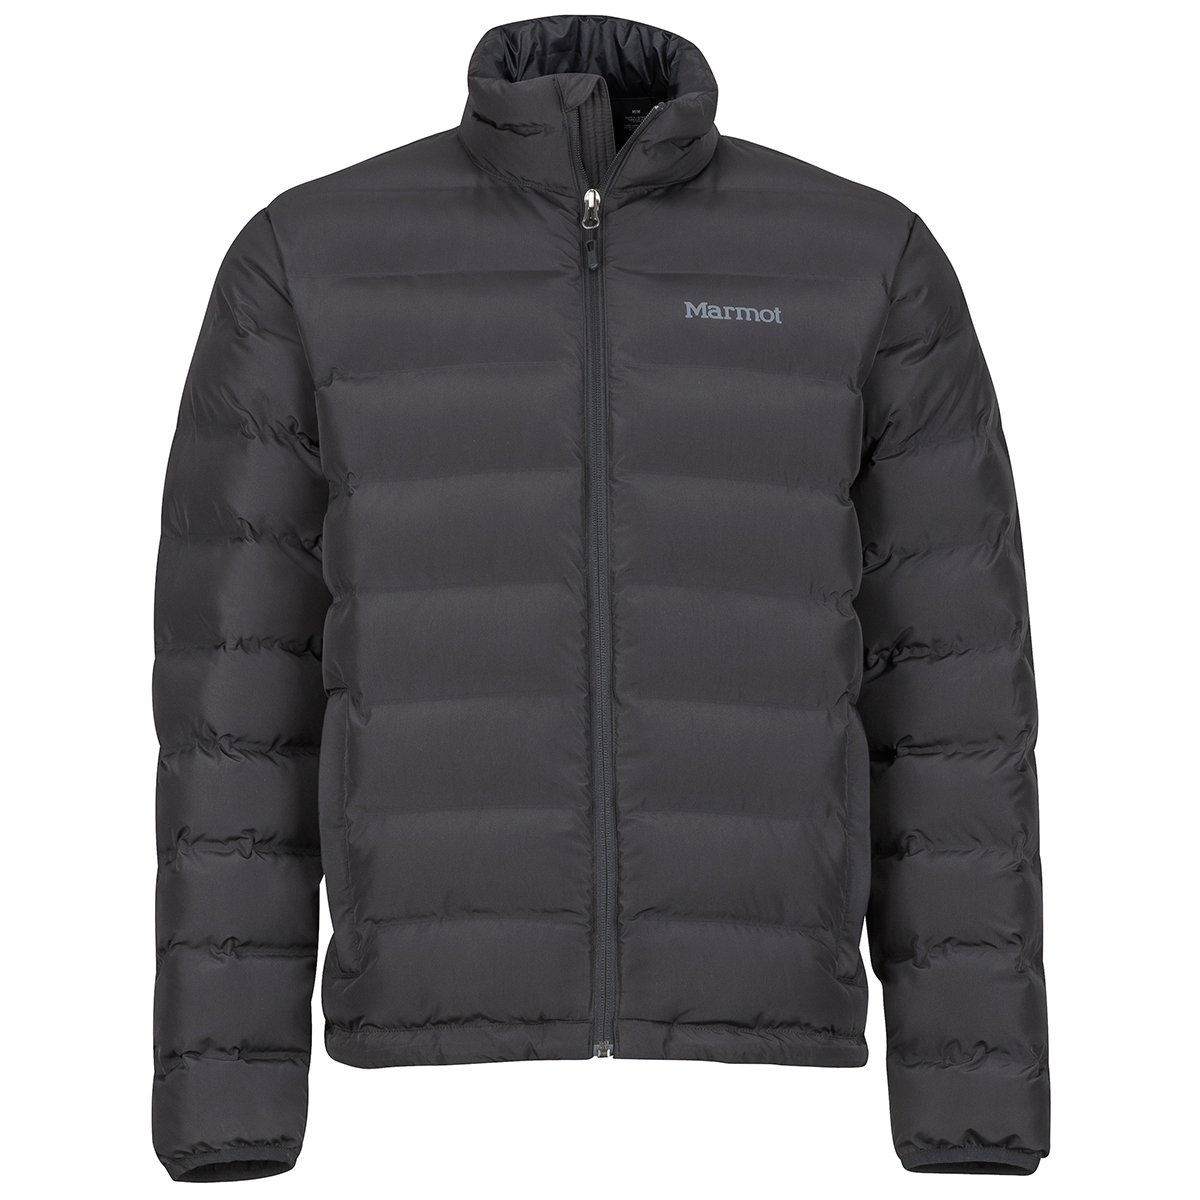 Marmot Men's Alassian Featherless Jacket - Black, L